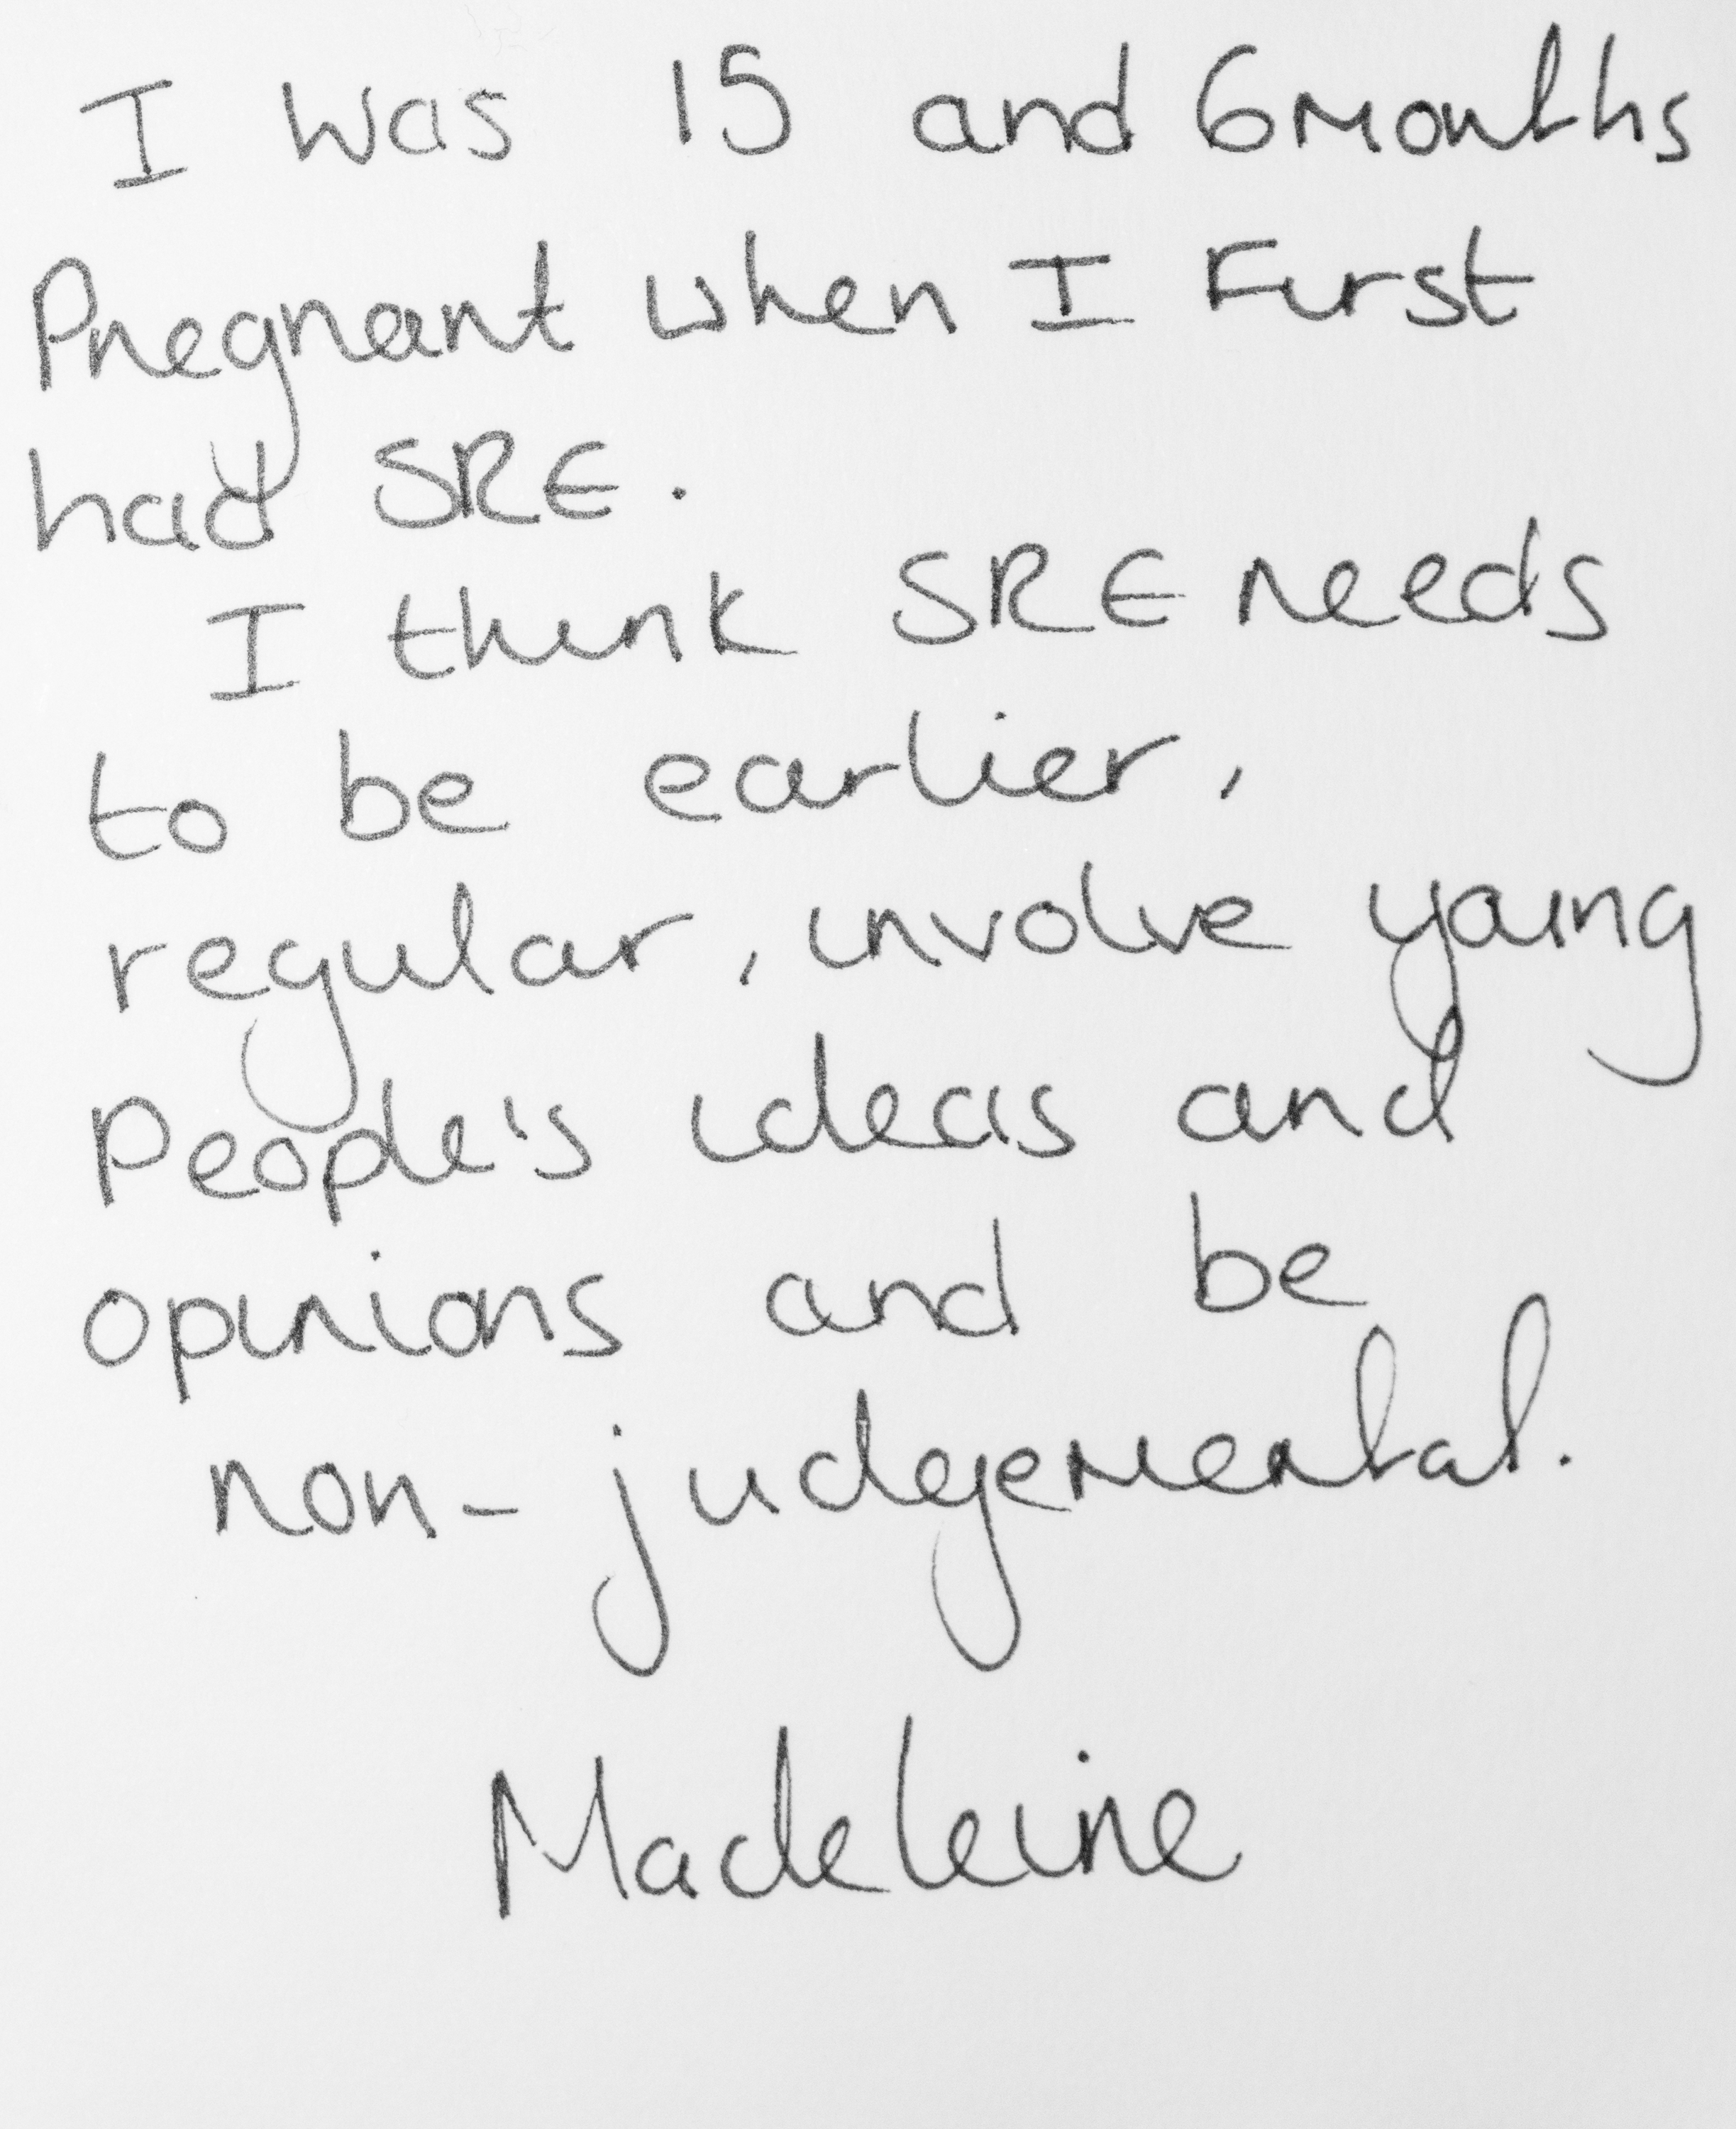 I was 15 and 6 months pregnant when I first had SRE. I think SRE needs to be earlier, regular, involve young people's ideas and opinions and be non-judgemental. -Madeleine